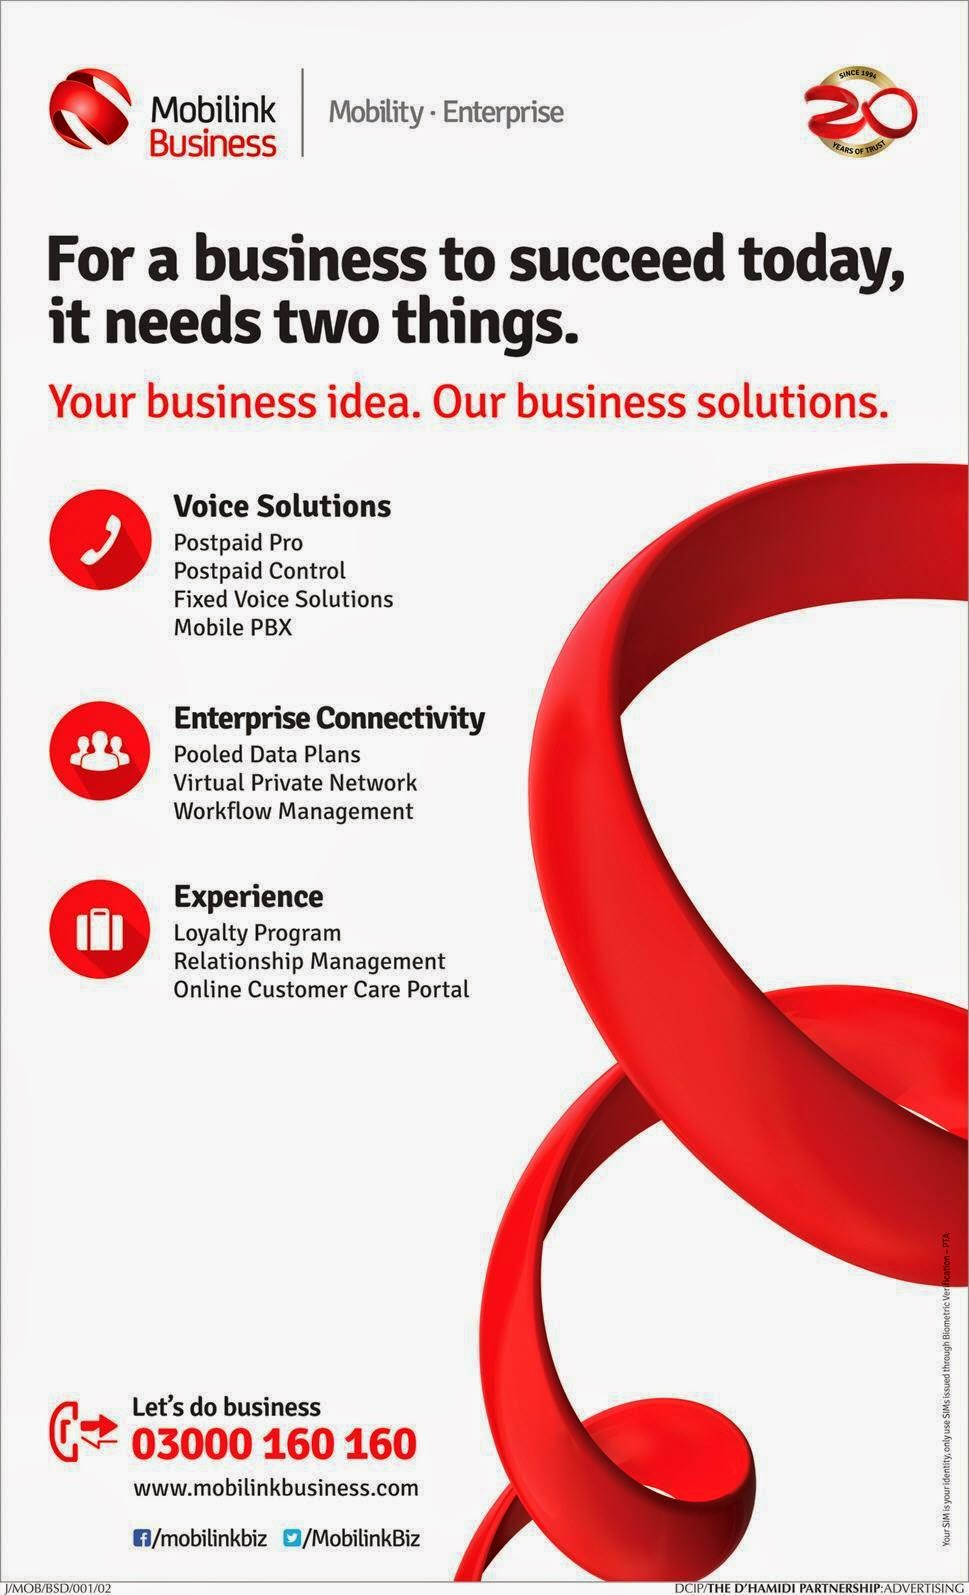 Mobilink Business Mobility Enterprise for Voice Solutions, Enterprise Connectivity and Experience